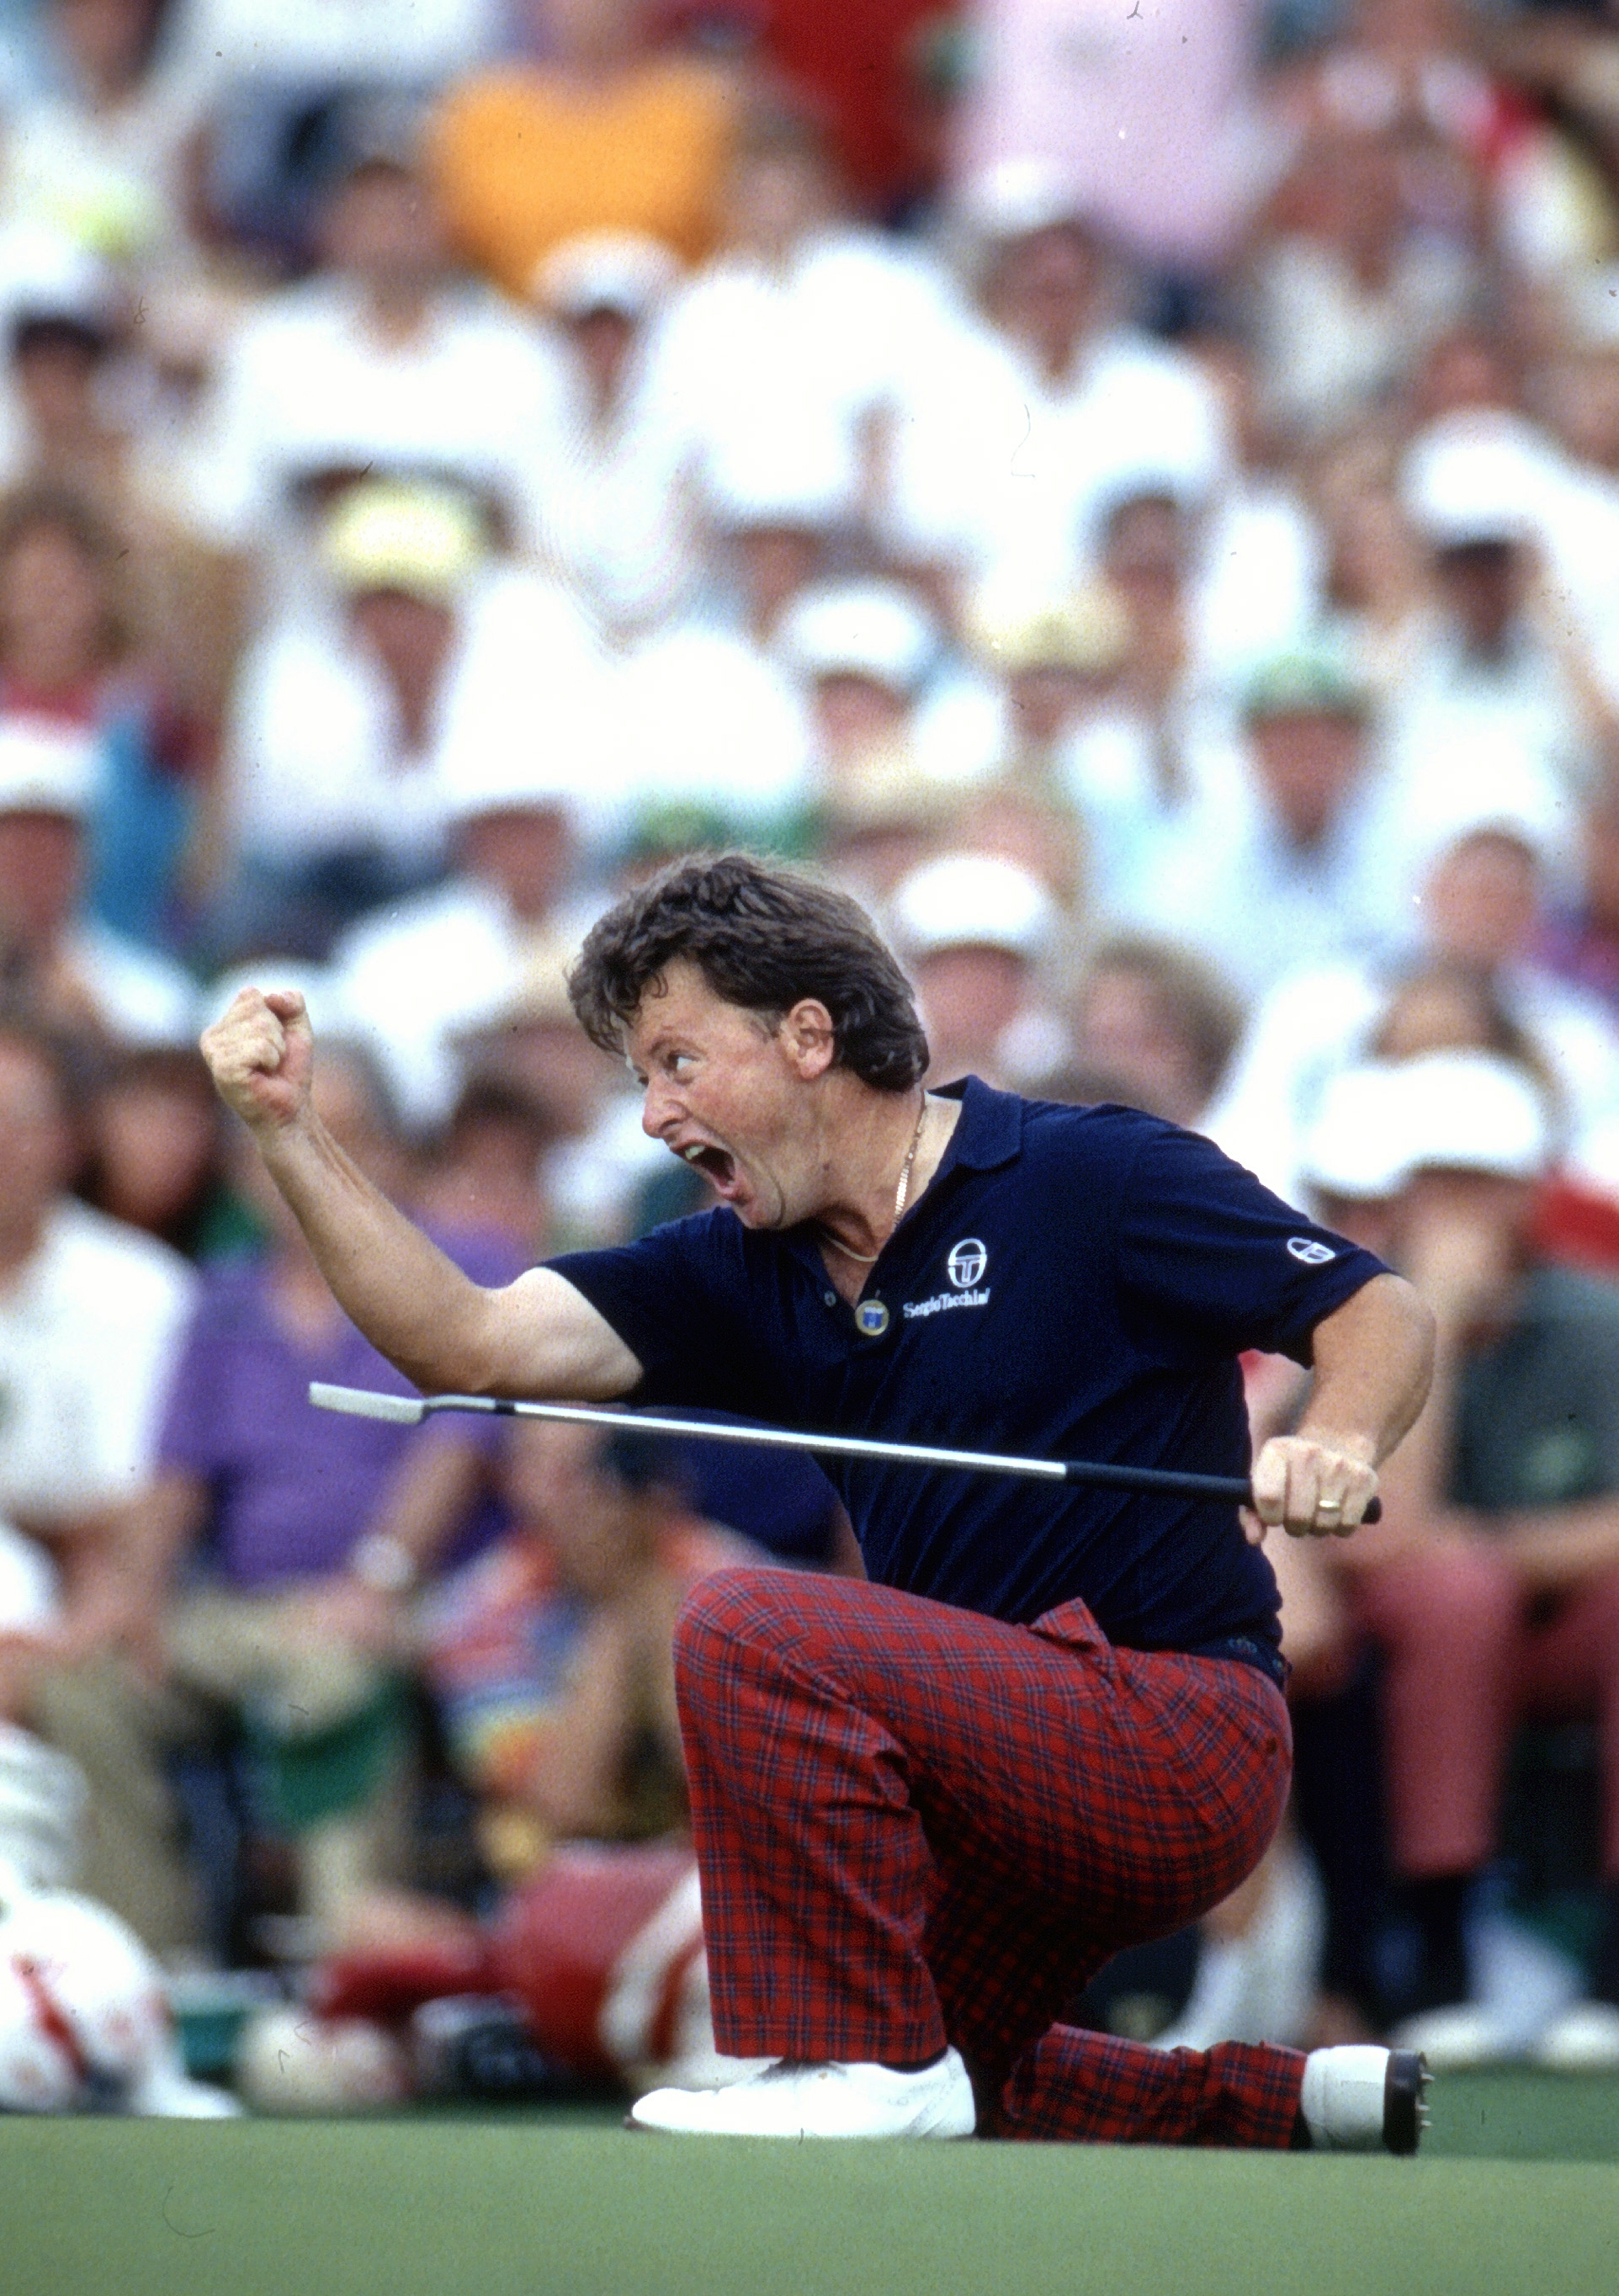 FILE - In this April 14, 1991 file photo, Ian Woosnam, from Wales, reacts to his putt for par on the 18th green to win the Masters golf tournament at the Augusta National Golf Club in Augusta, Ga. A quarter century after winning the Masters, Woosnam has p